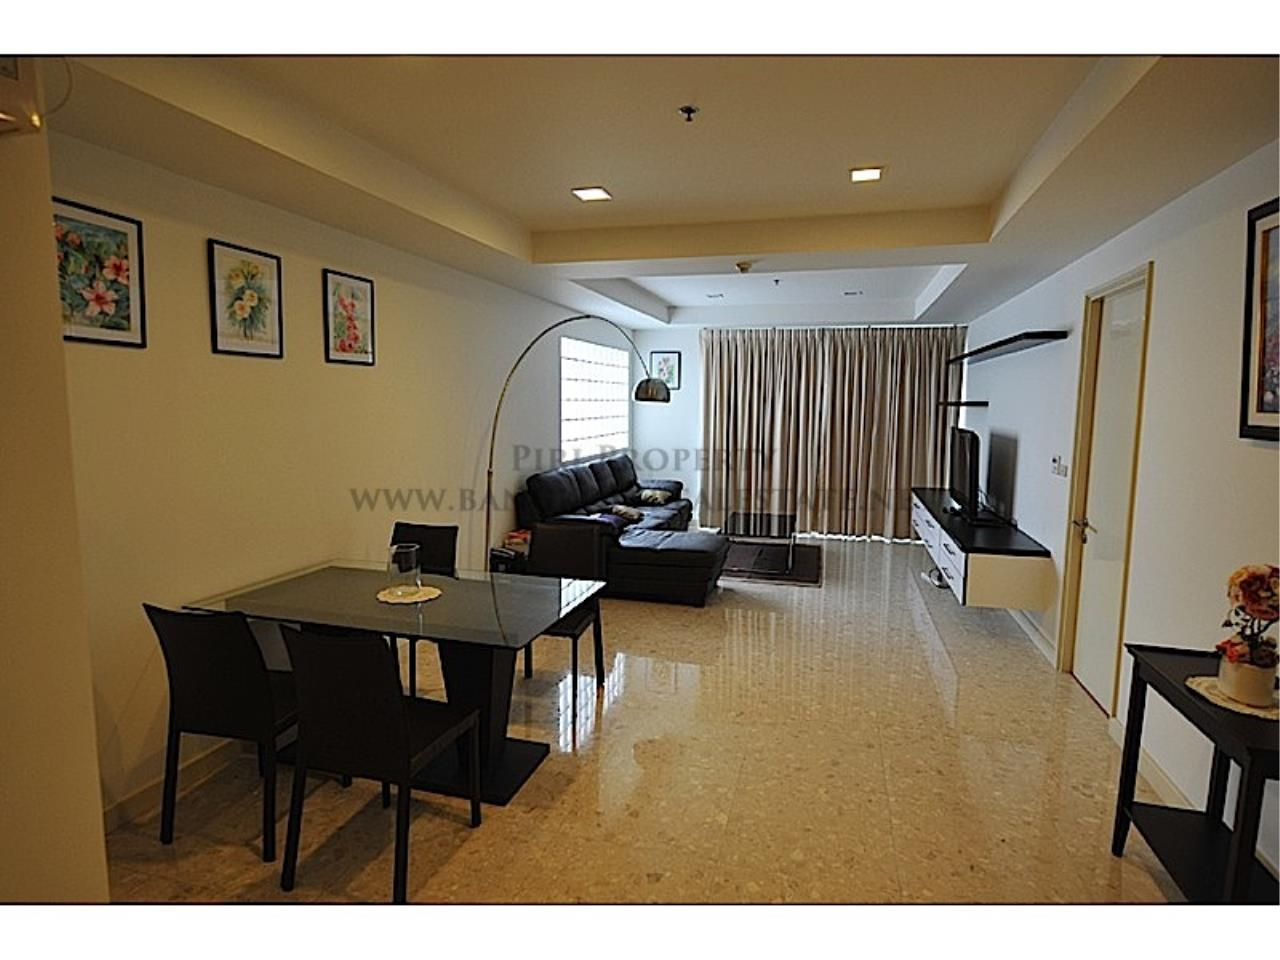 Piri Property Agency's Modern fully furnished two bedroom unit - Nusasiri Grand Condo 6